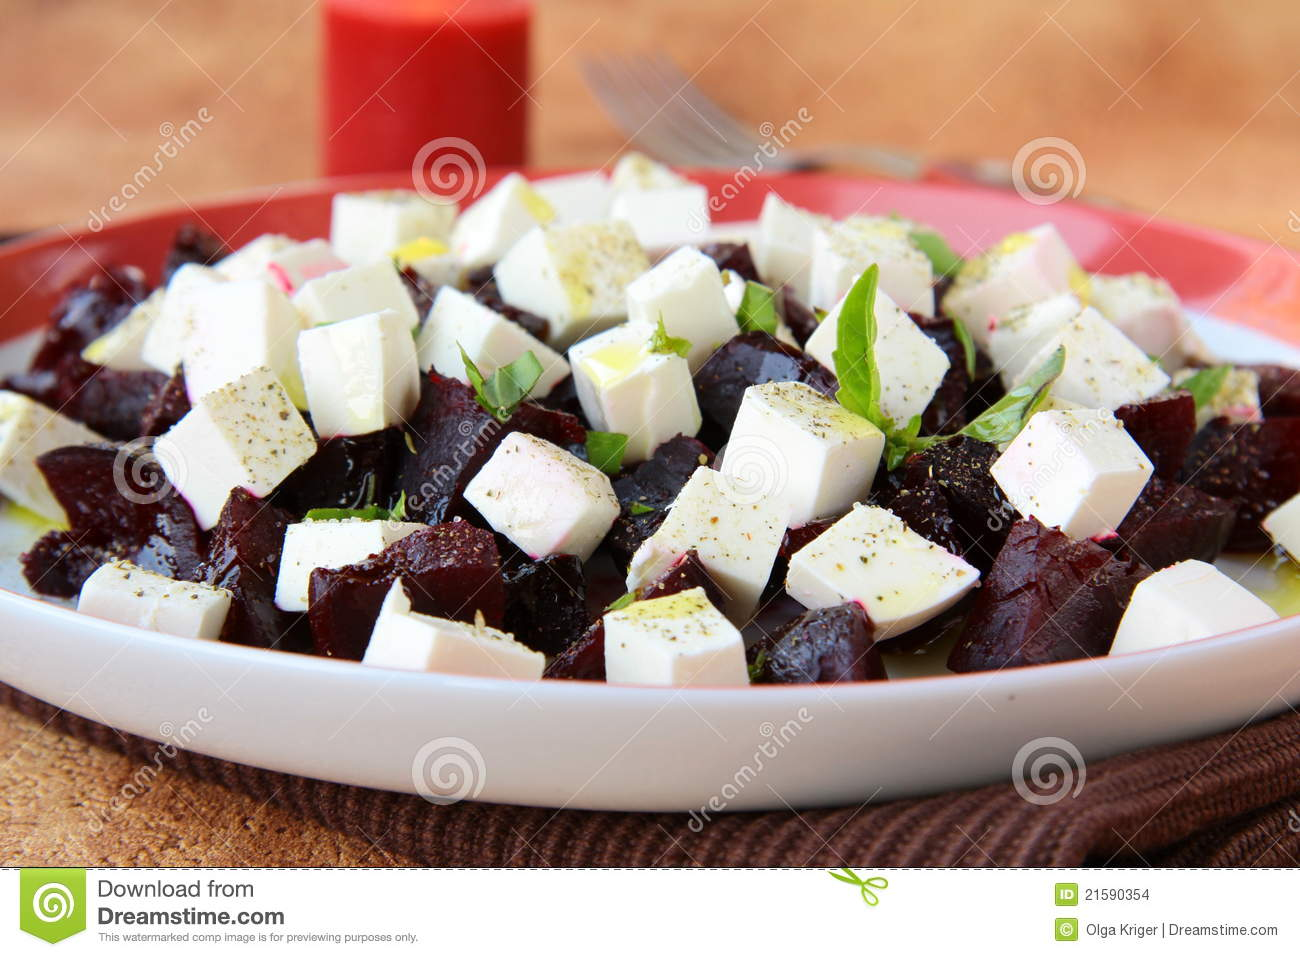 Appetizer salad of beets and goat cheese with basil and olive oil.